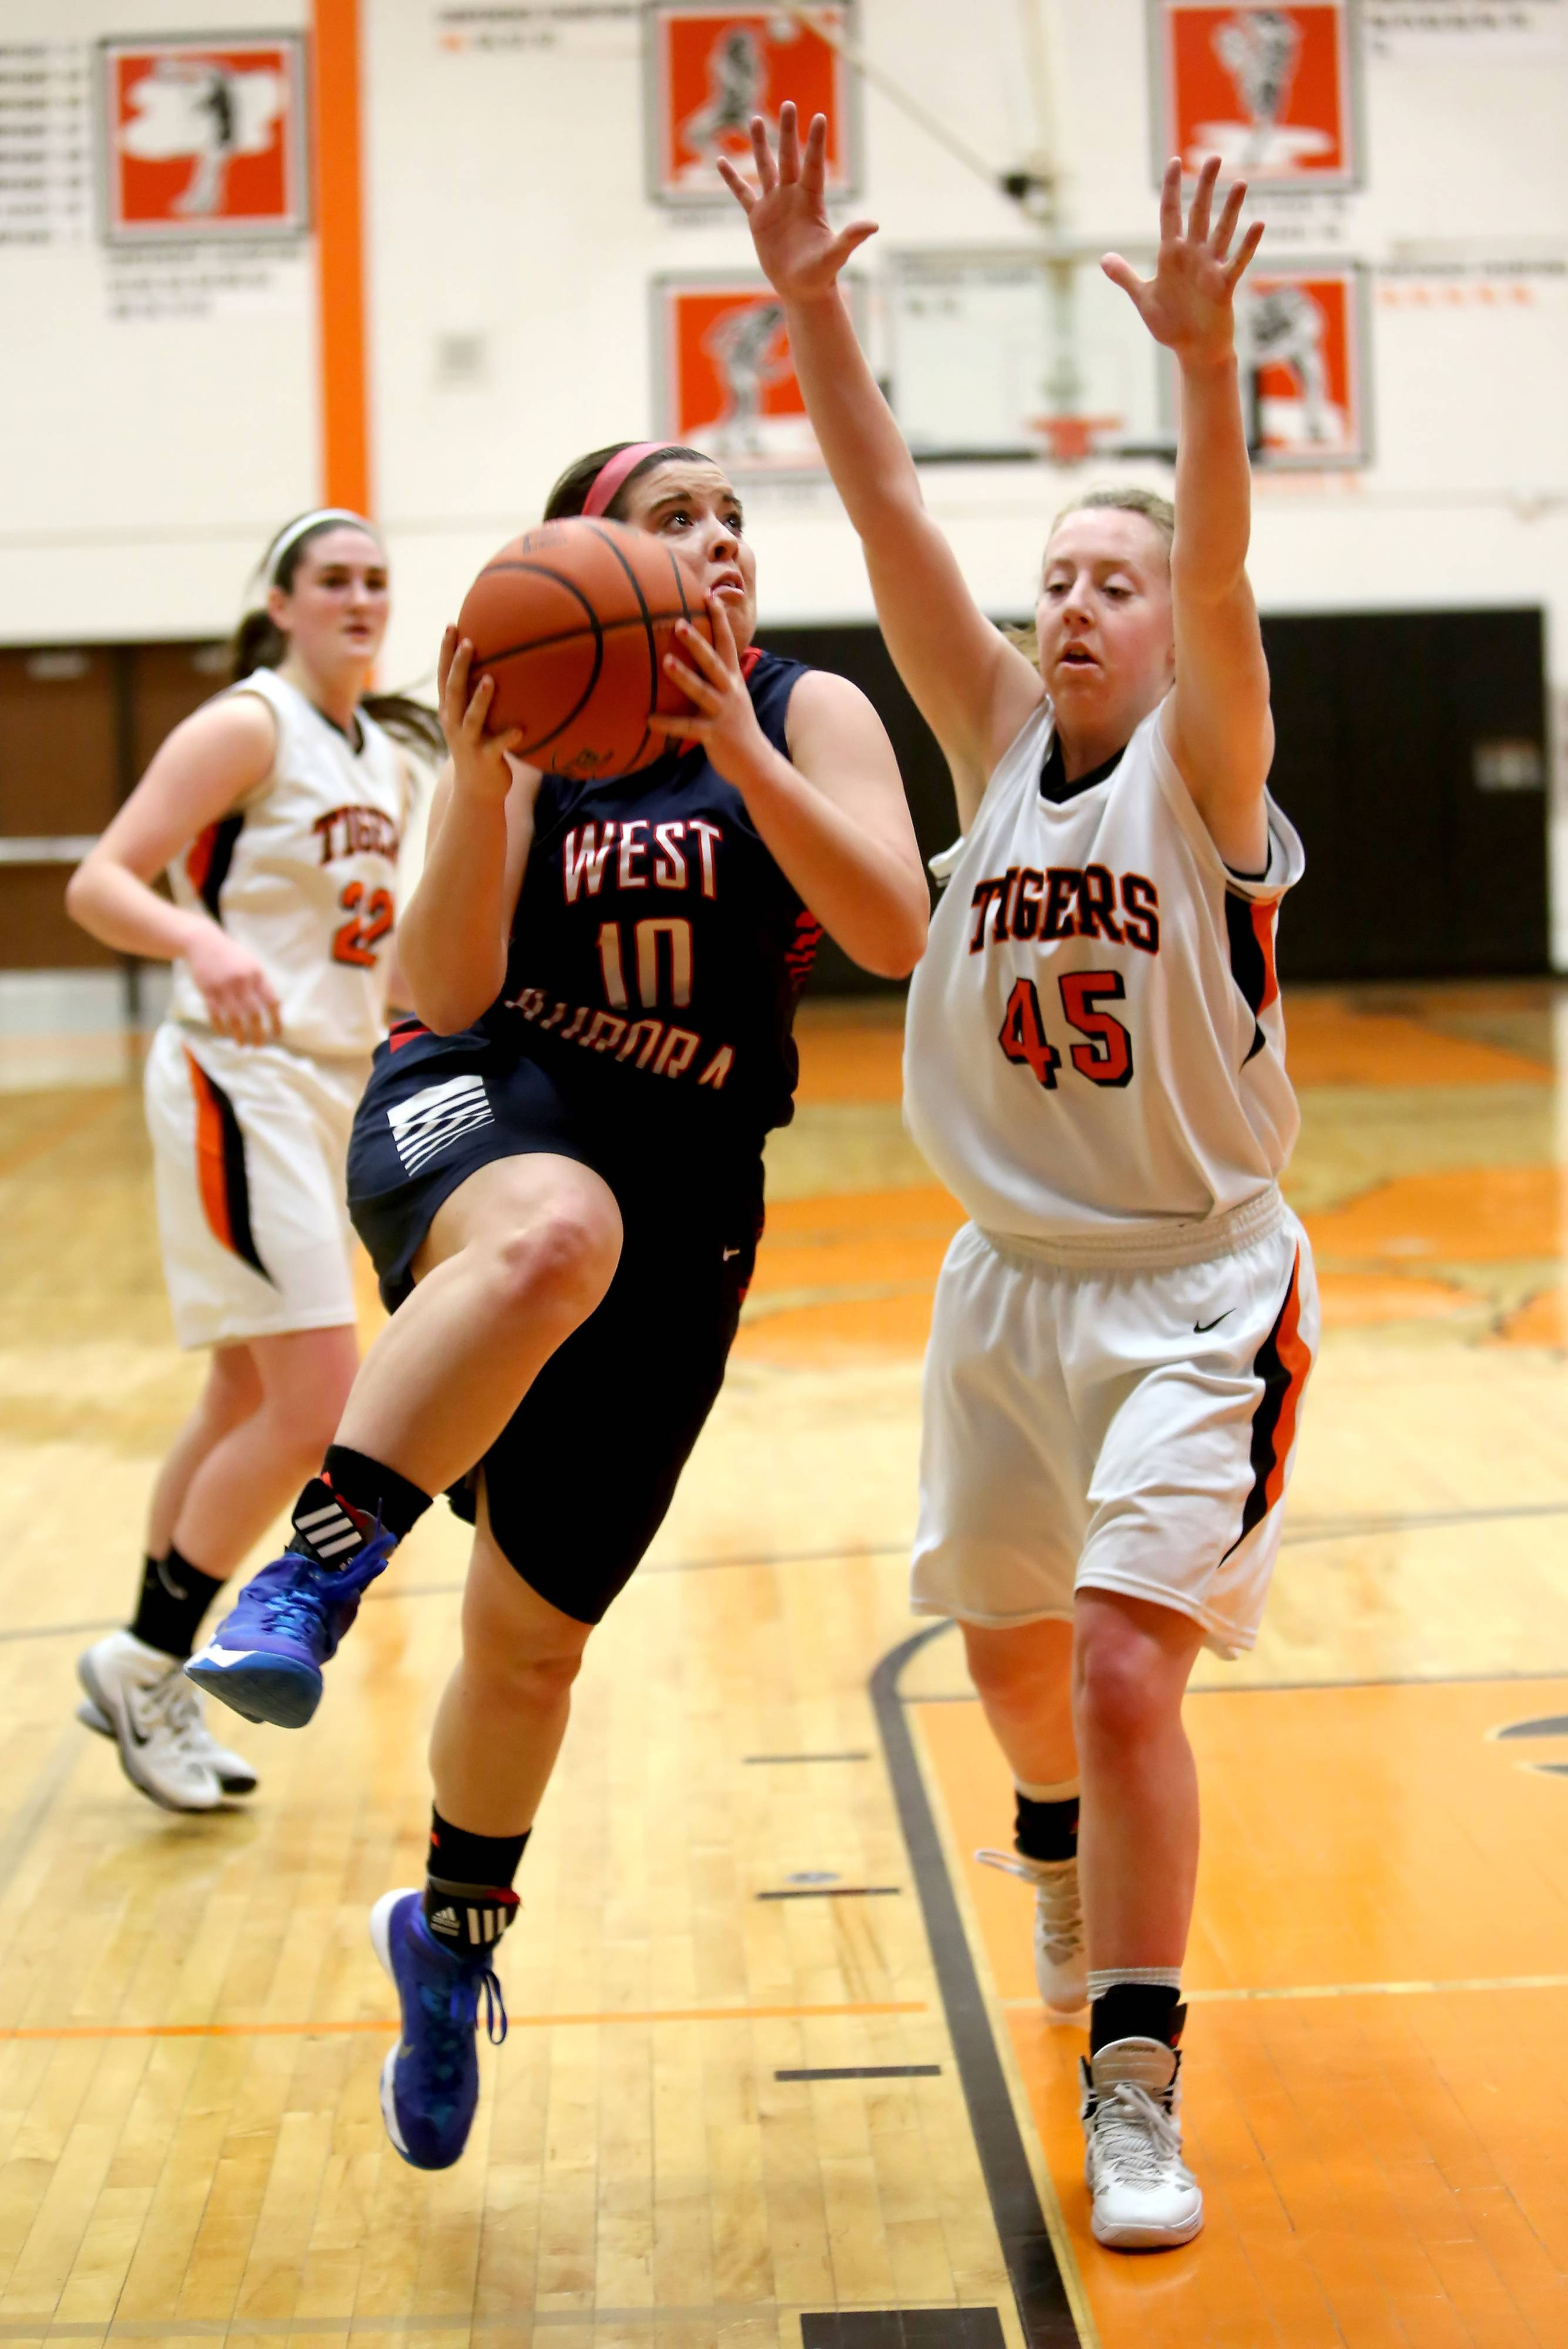 West Aurora's Taylor Jacobsen moves past Meghan Waldron of Wheaton Warrenville South, right, to attempt a basket in girls basketball action on Monday in Wheaton.